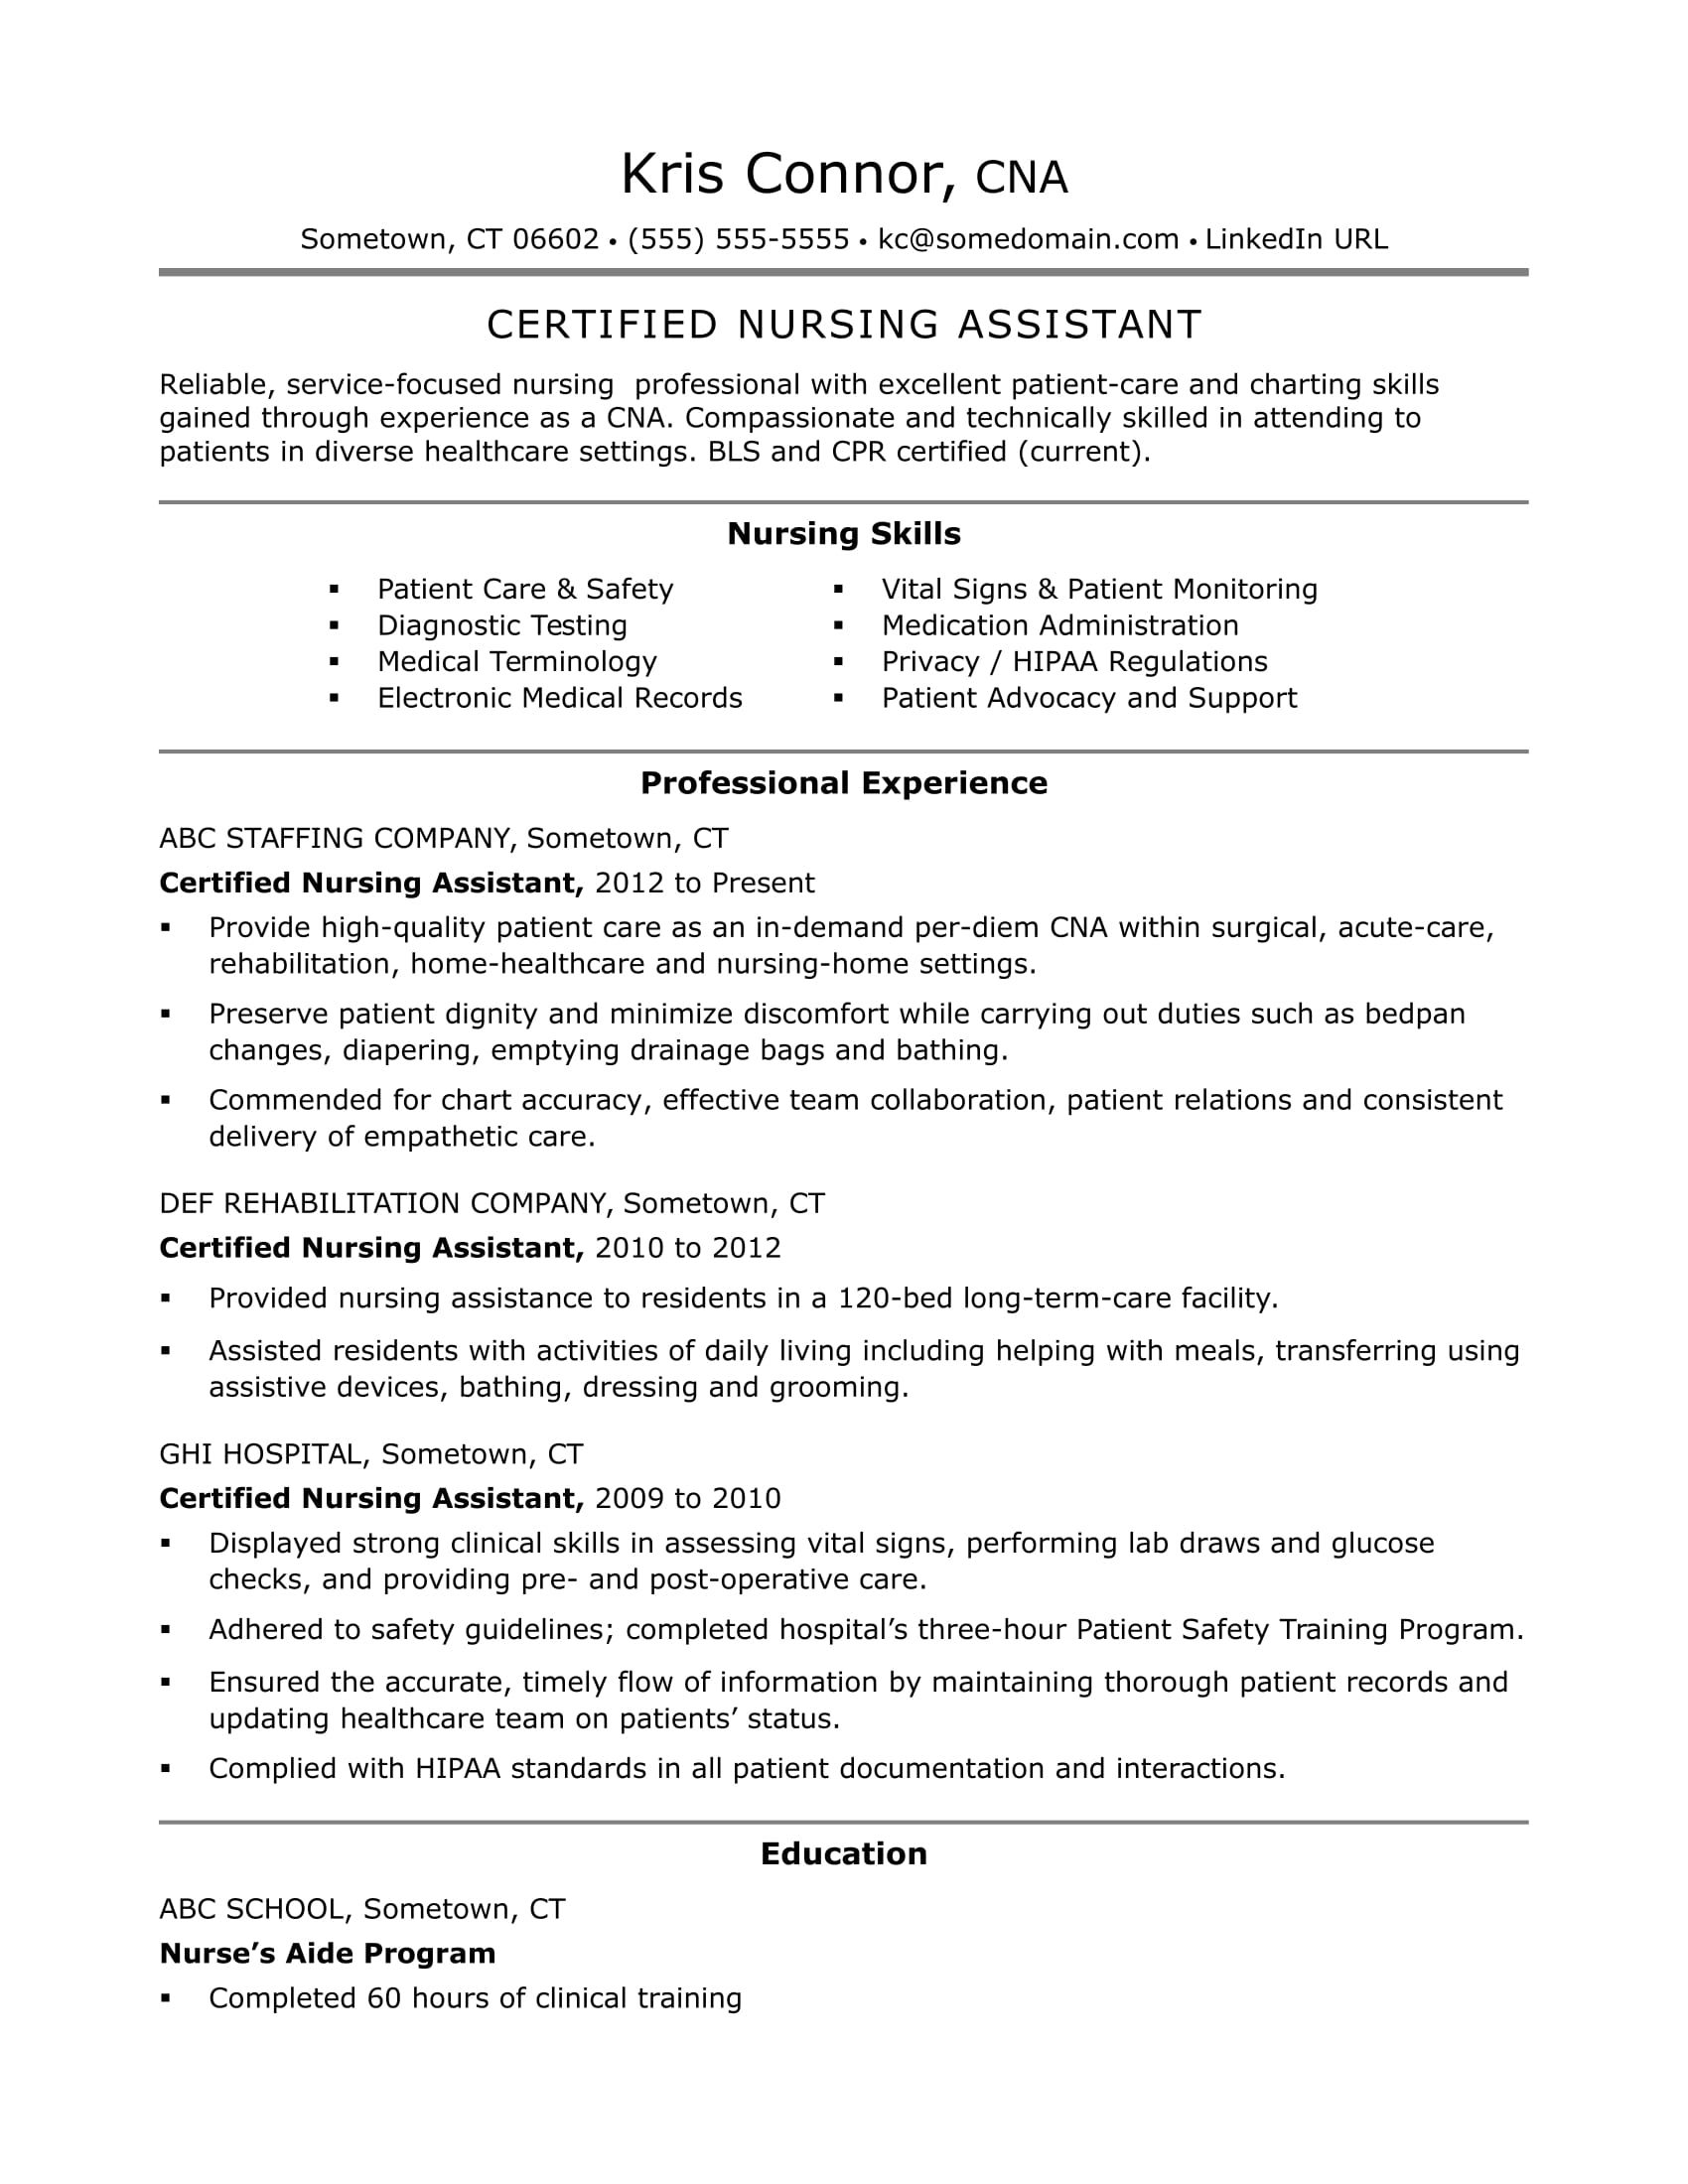 cna resume example - Sample Certified Nursing Assistant Resume